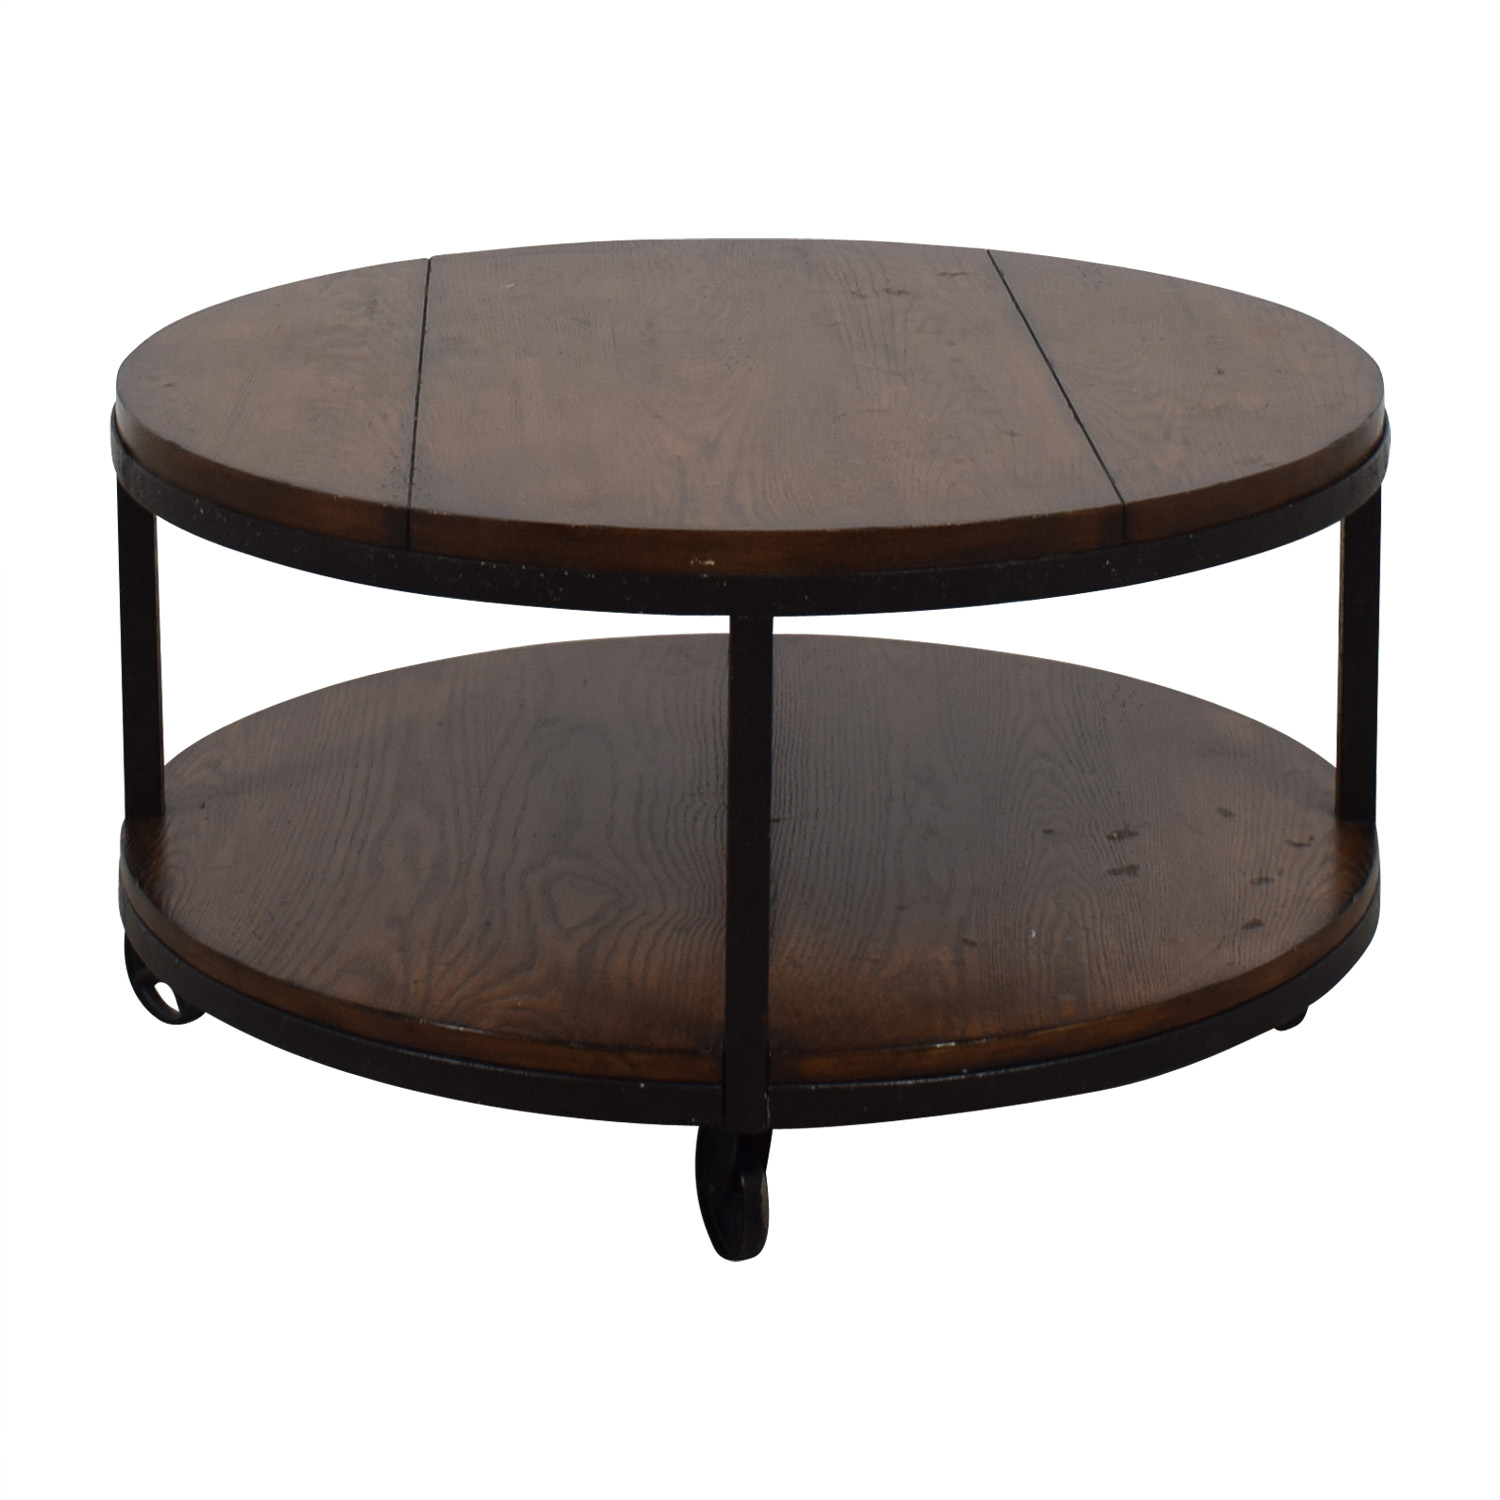 Shop Hammary Baha Hammary Baha Round Wood Coffee Table Online